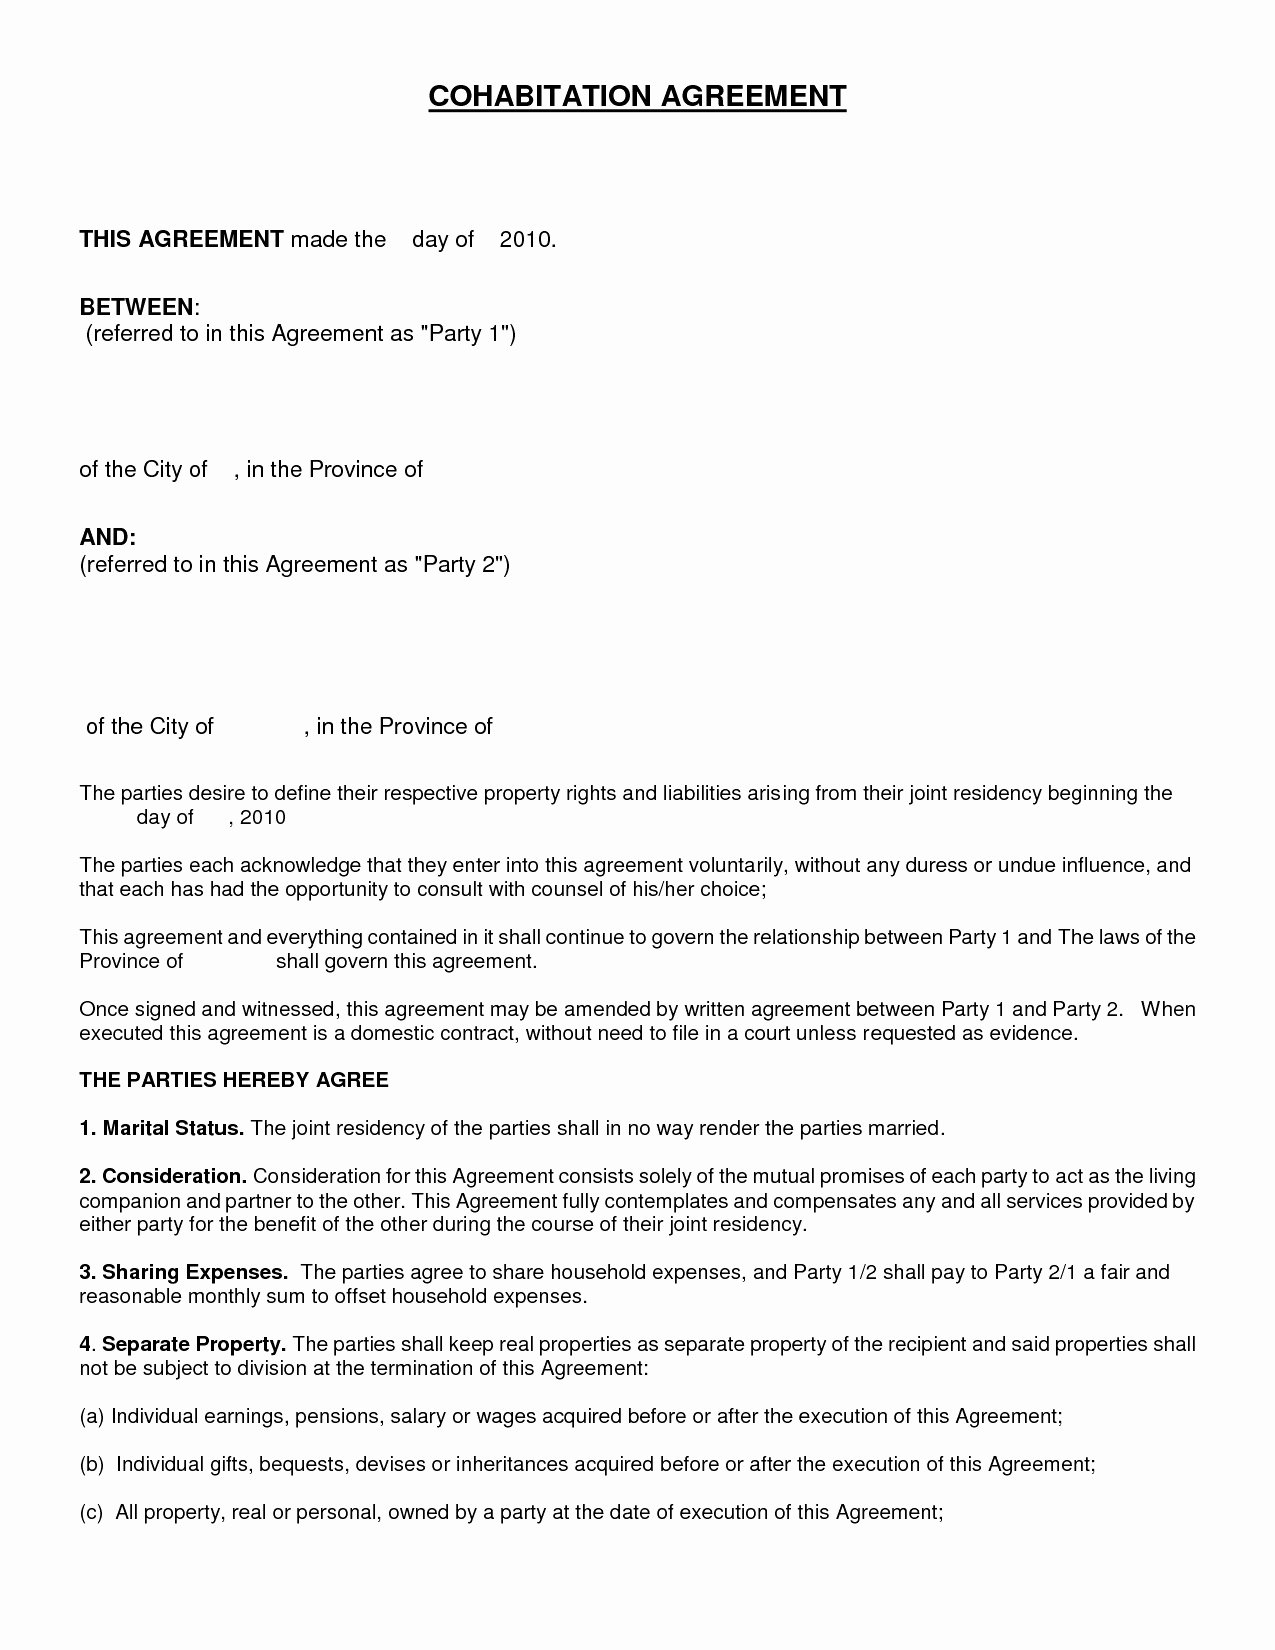 Marriage Termination Agreement Nc Separation Agreement Template Template Modern Design